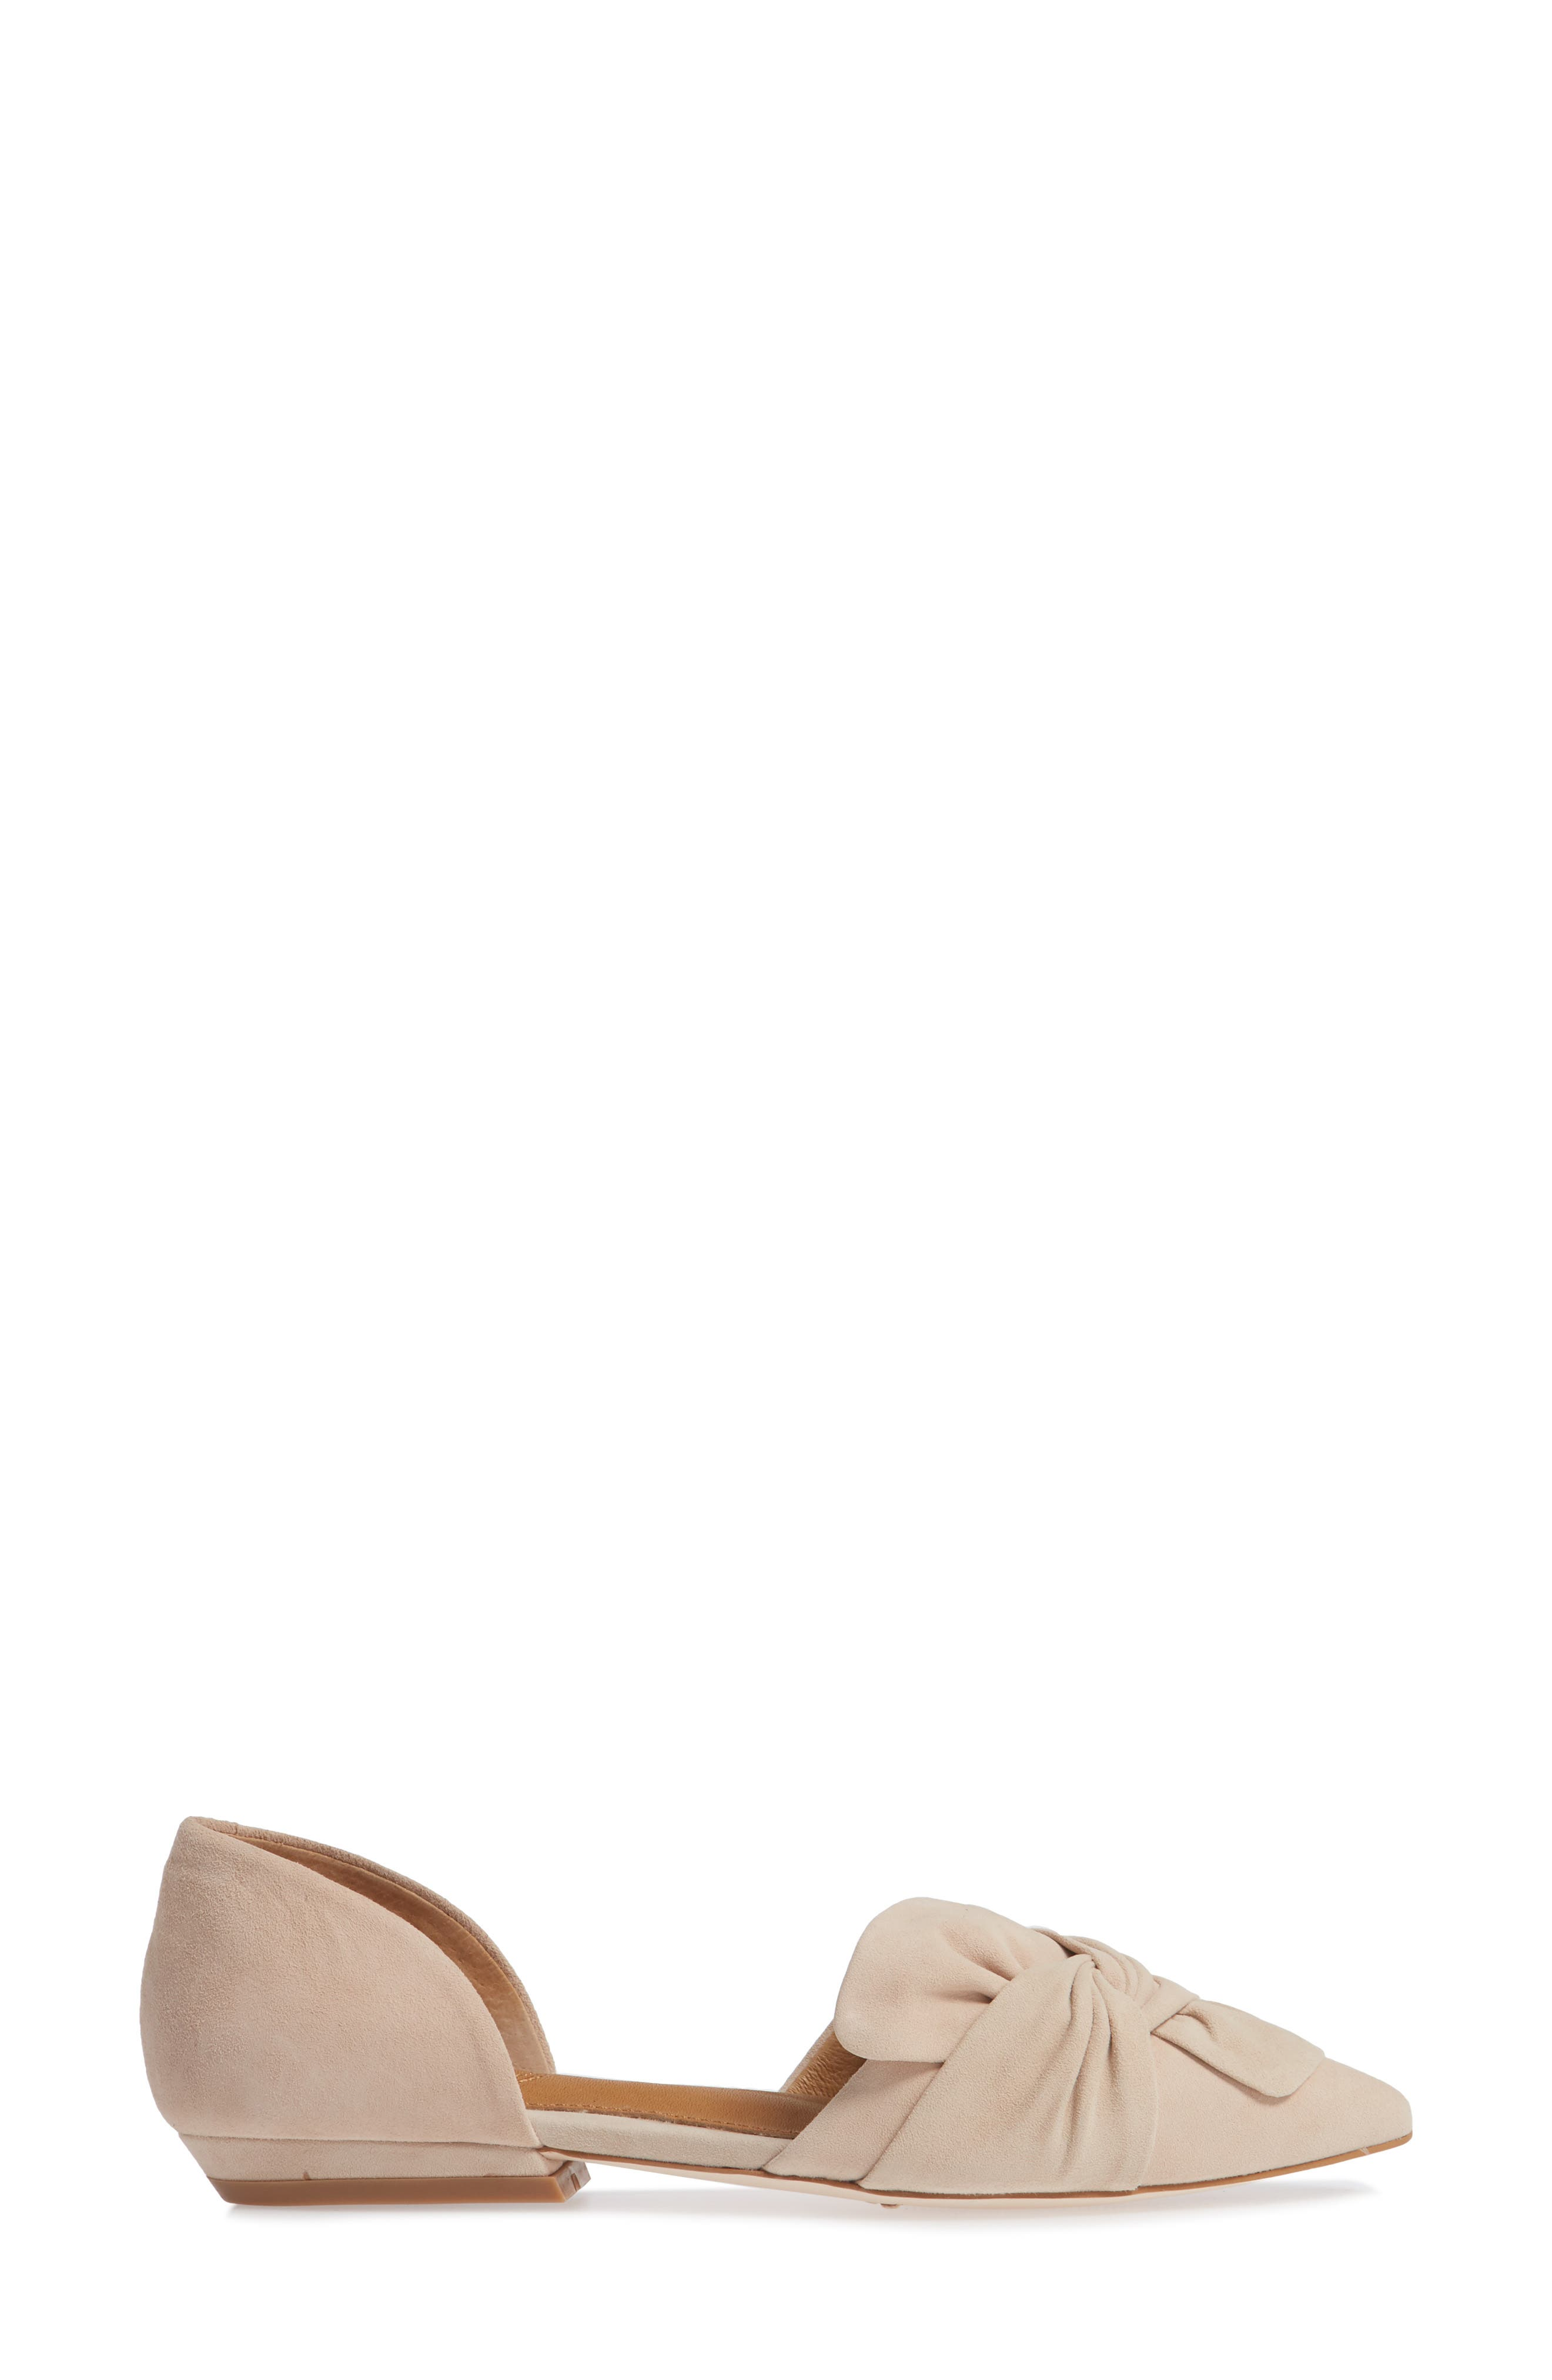 Mollie d'Orsay Flat,                             Alternate thumbnail 3, color,                             Nude Suede